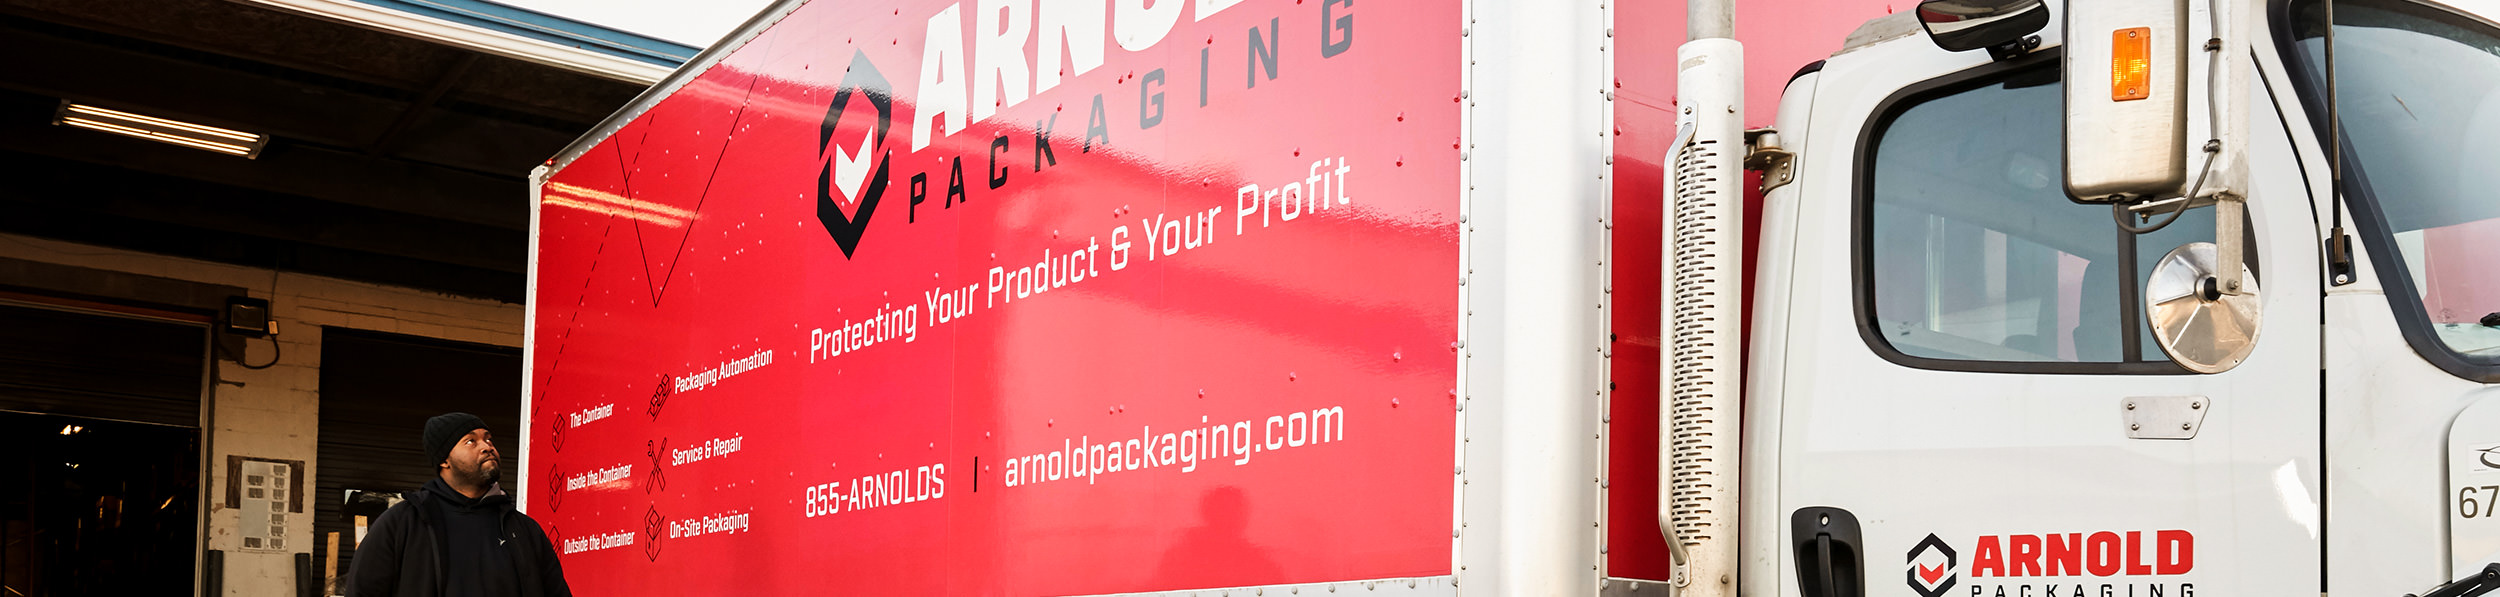 Arnold Packaging - About Us